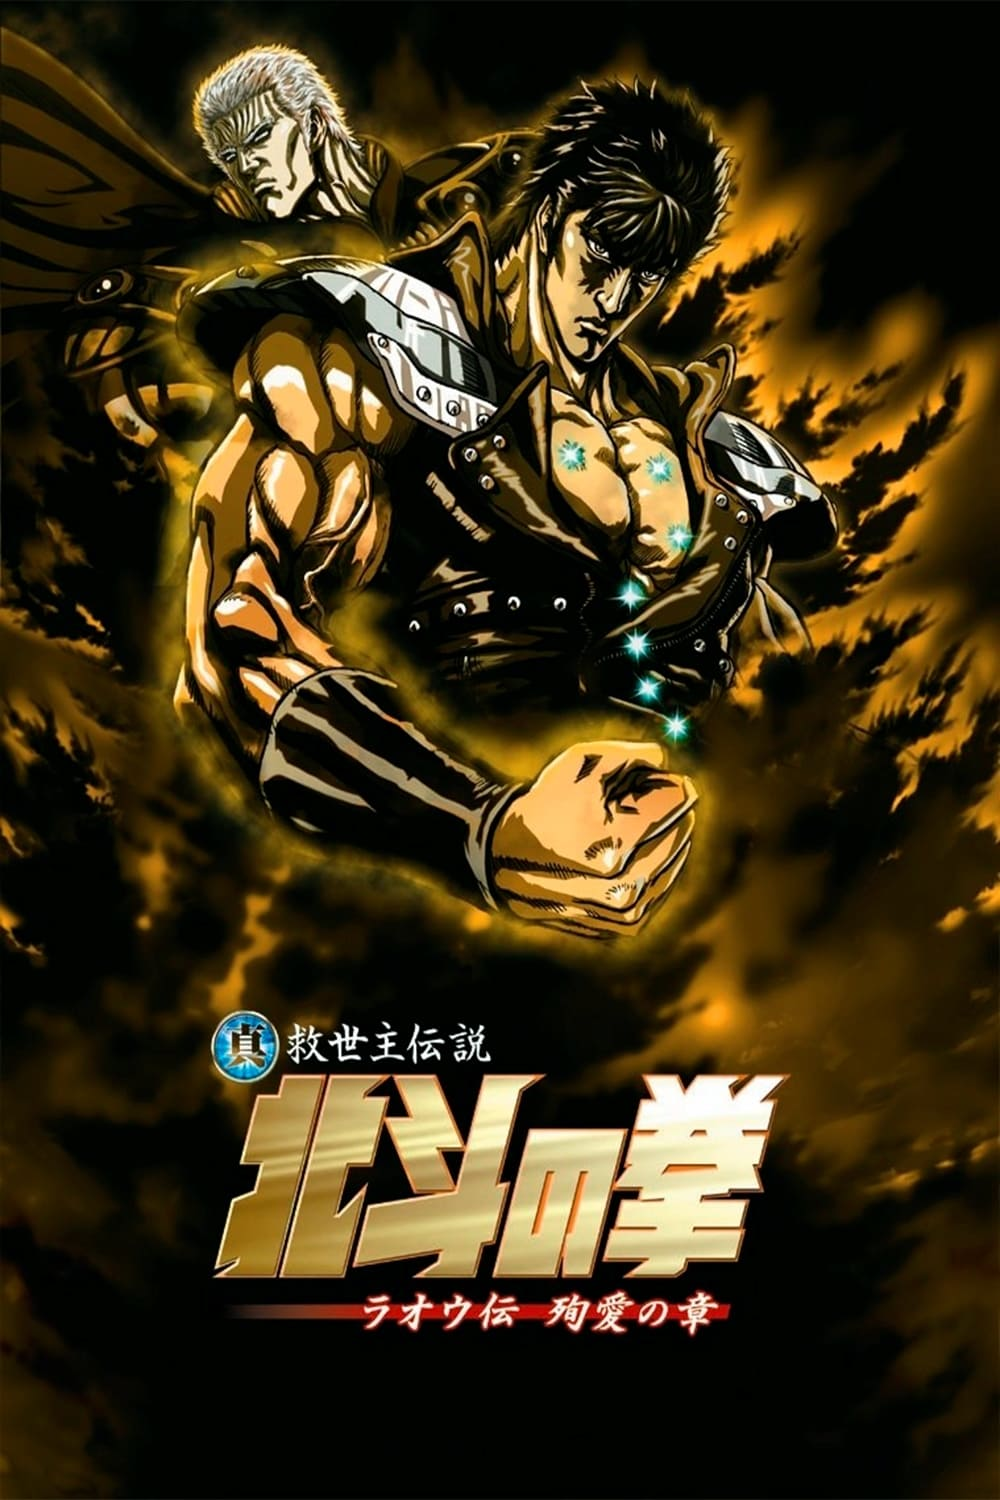 Fist of the north star movie download